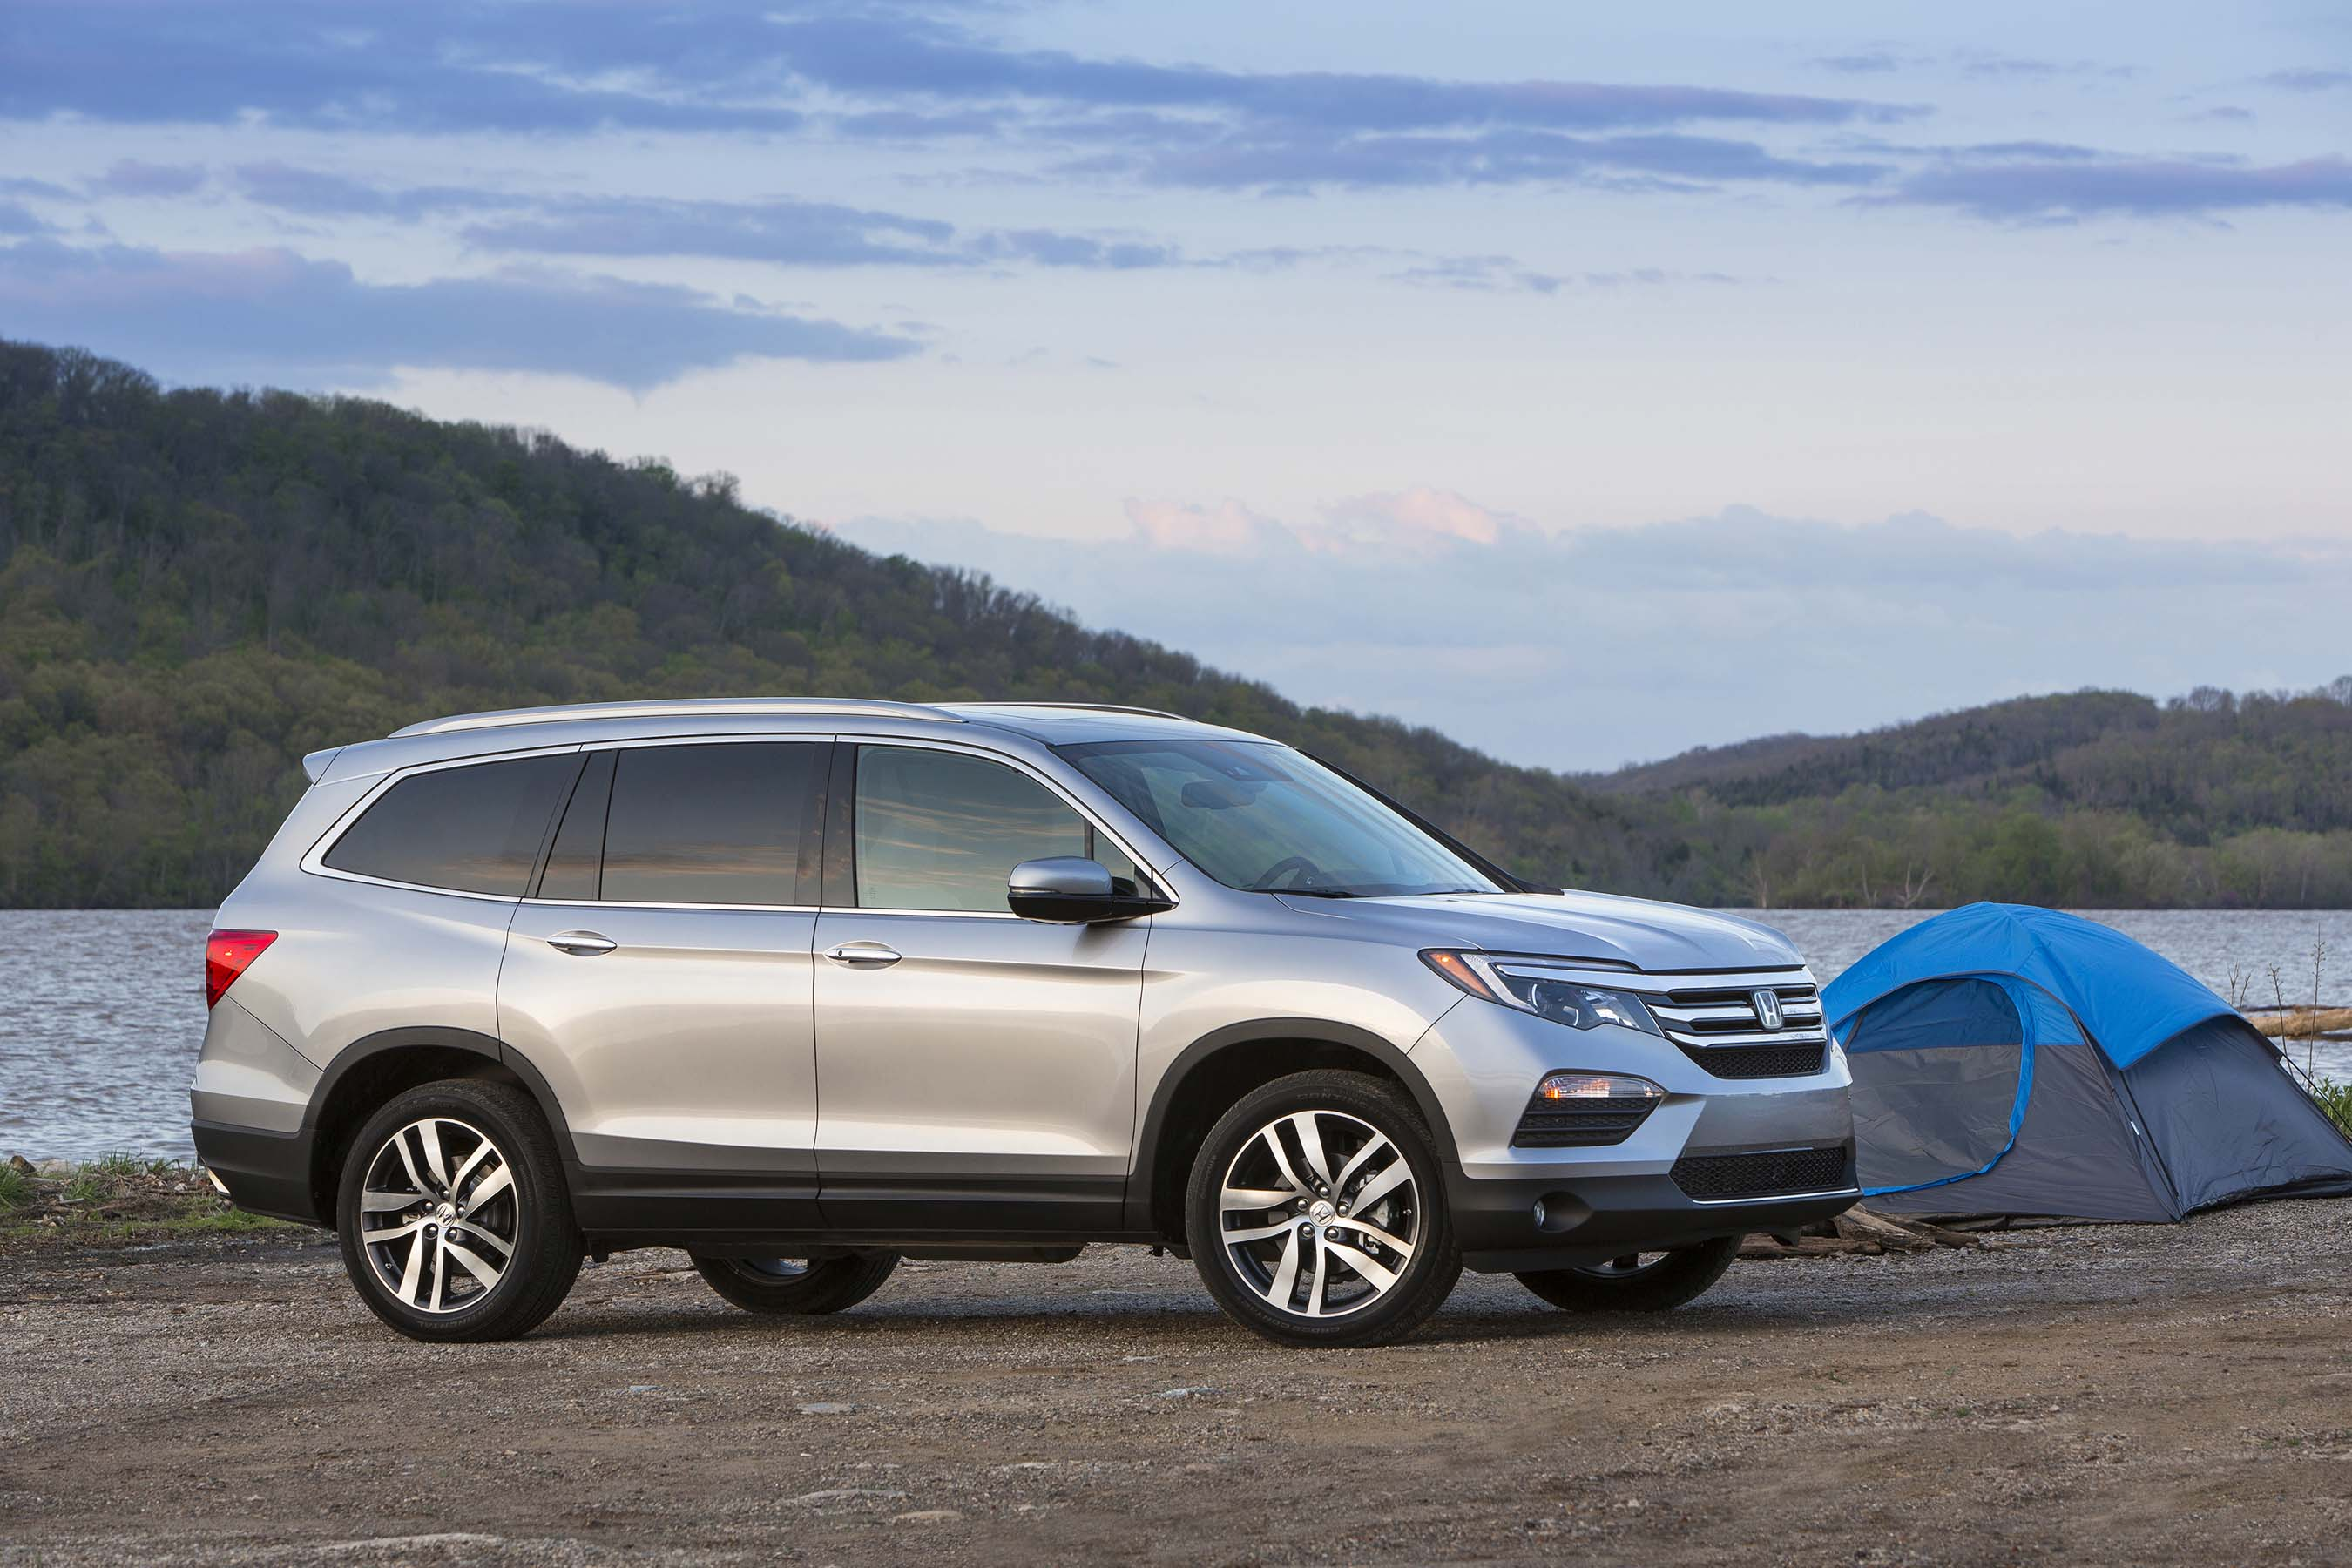 Kelley Blue Book Names 16 Best Family Cars Of 2016 - Feb 4, 2016